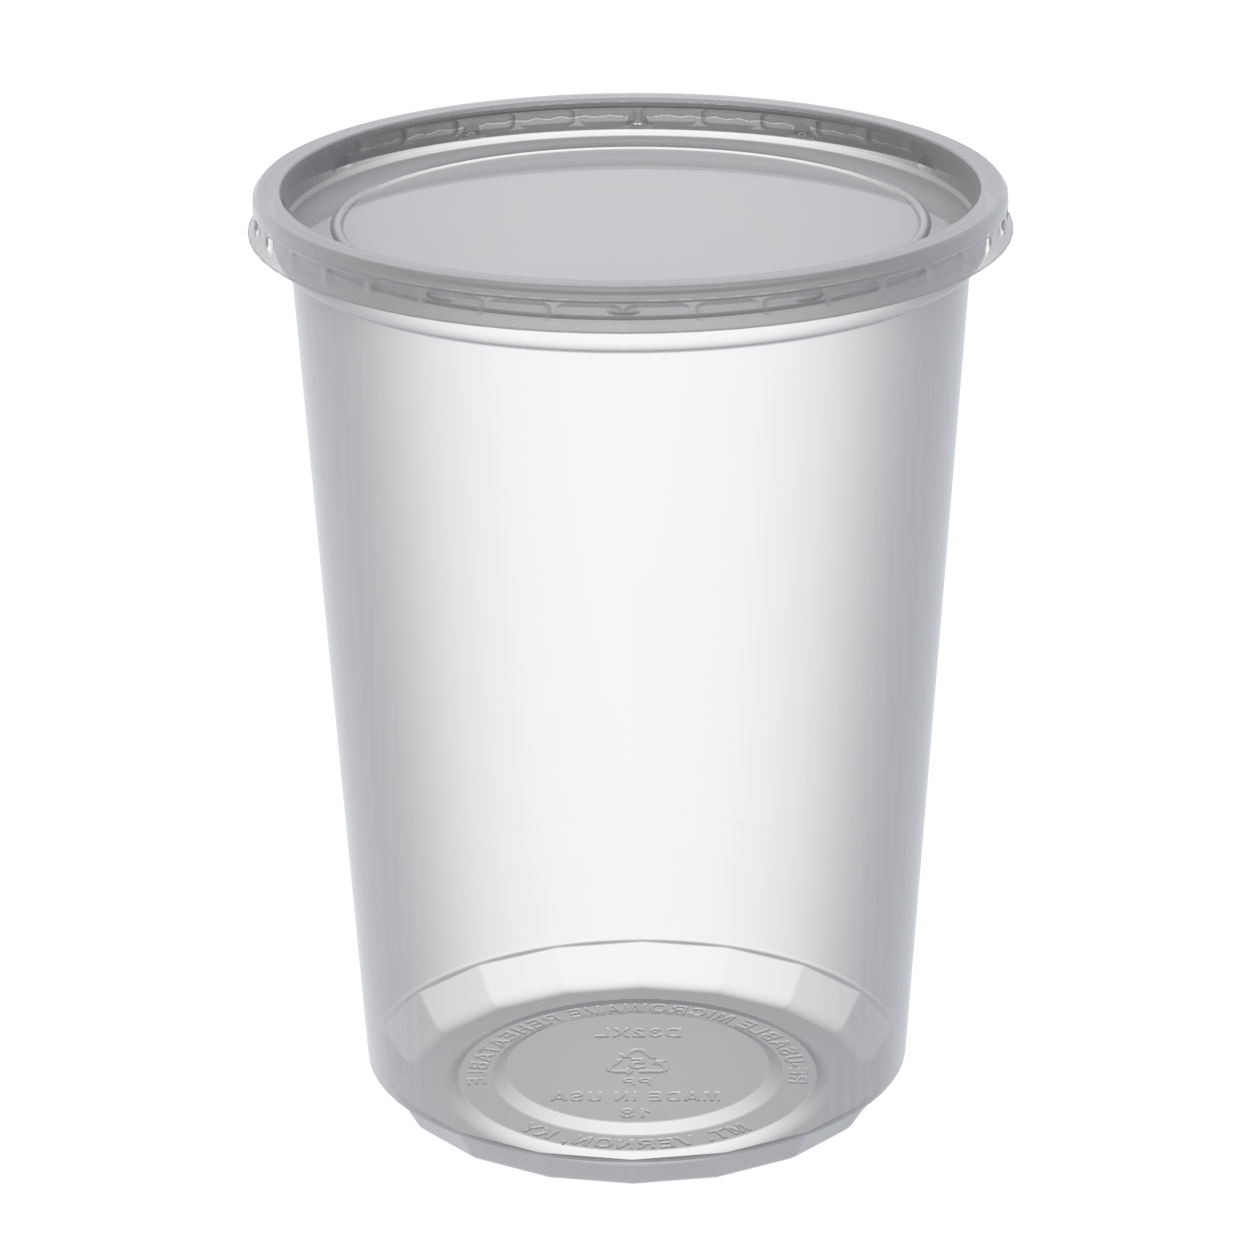 Cup With Lid : Microlite oz clear cup lid combo pack cd cxl